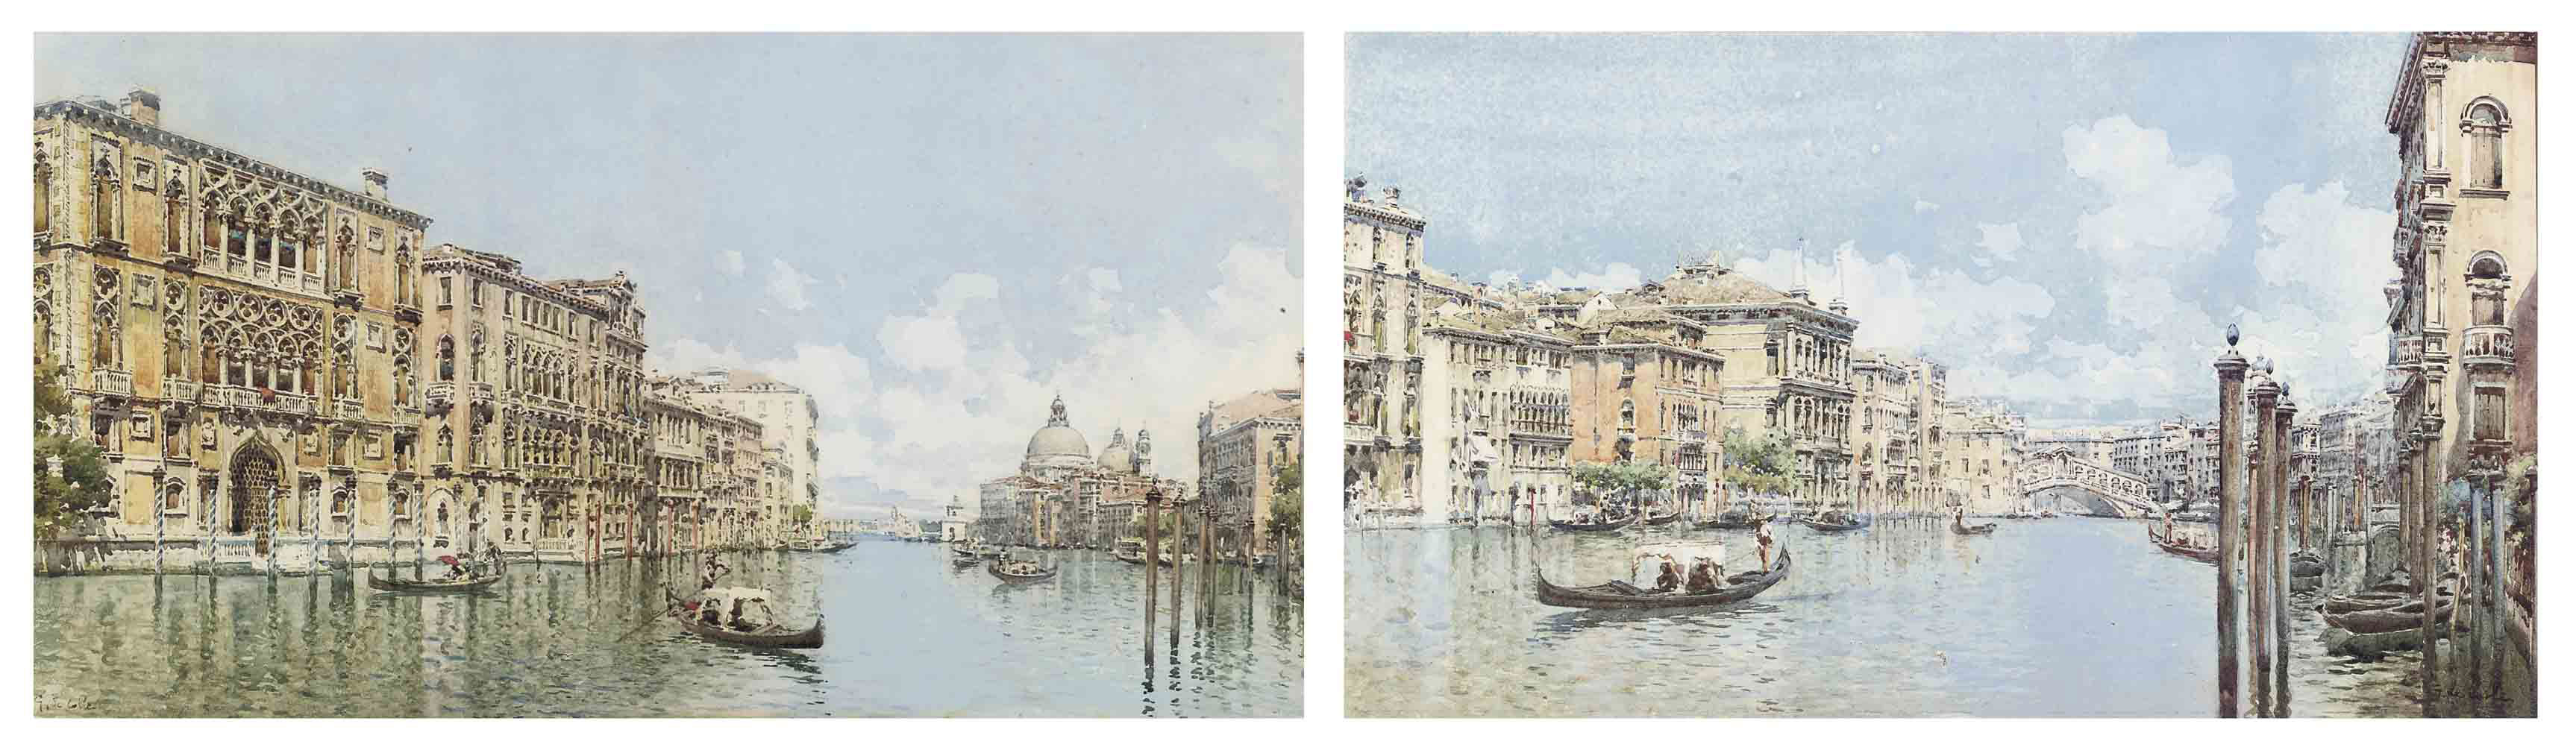 Gondolas on the Grand Canal before Santa Maria della Salute; and On the Grand Canel before the Rialto bridge, Venice